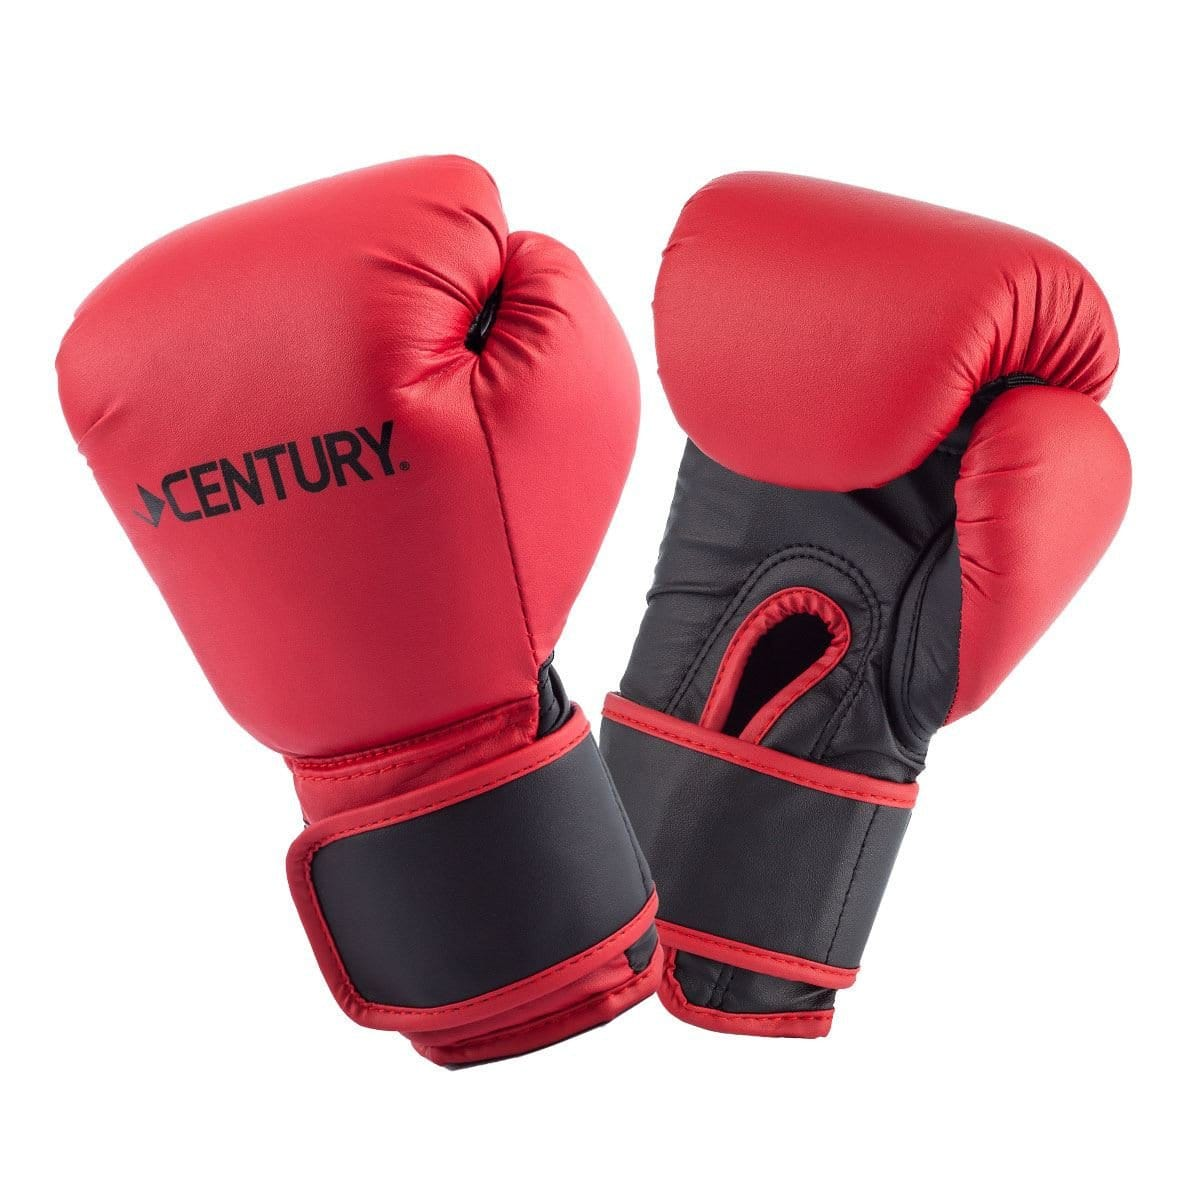 Century Youth Boxing Bloves Red for children c10662 - BlackBeltShop